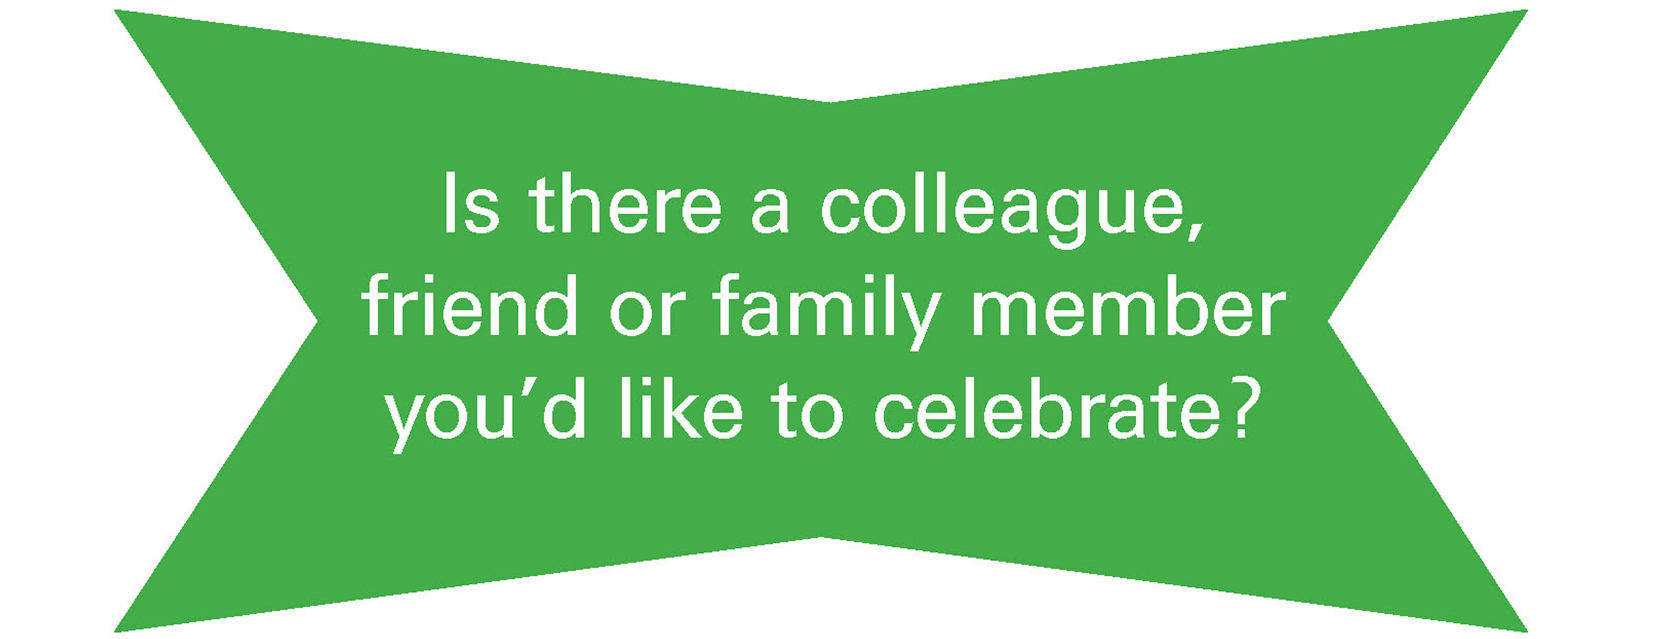 Is there a colleague, friend or family member you'd like to celebrate?